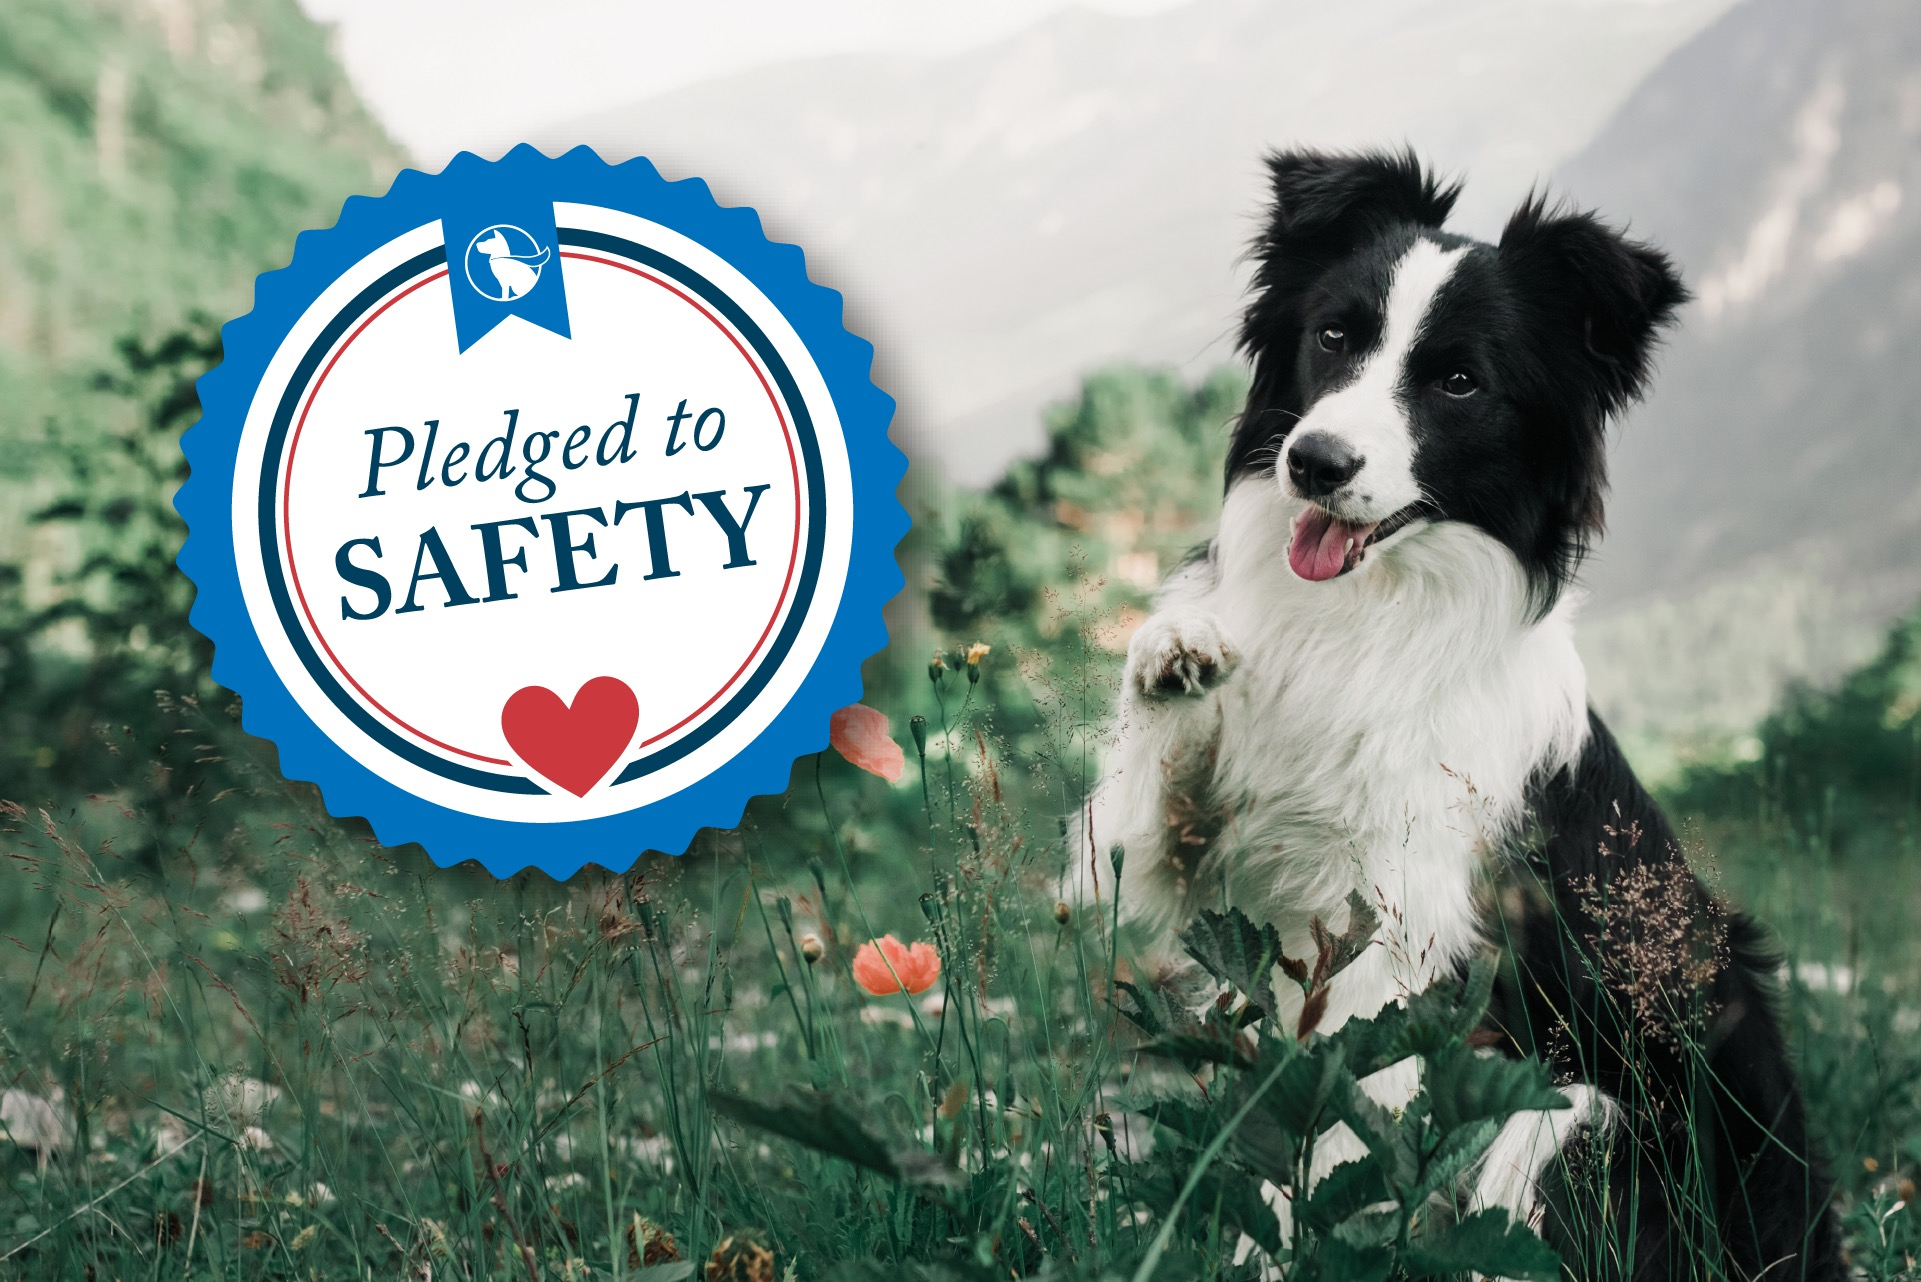 in-home-private-dog-training-lessons-safety-pledge.jpeg